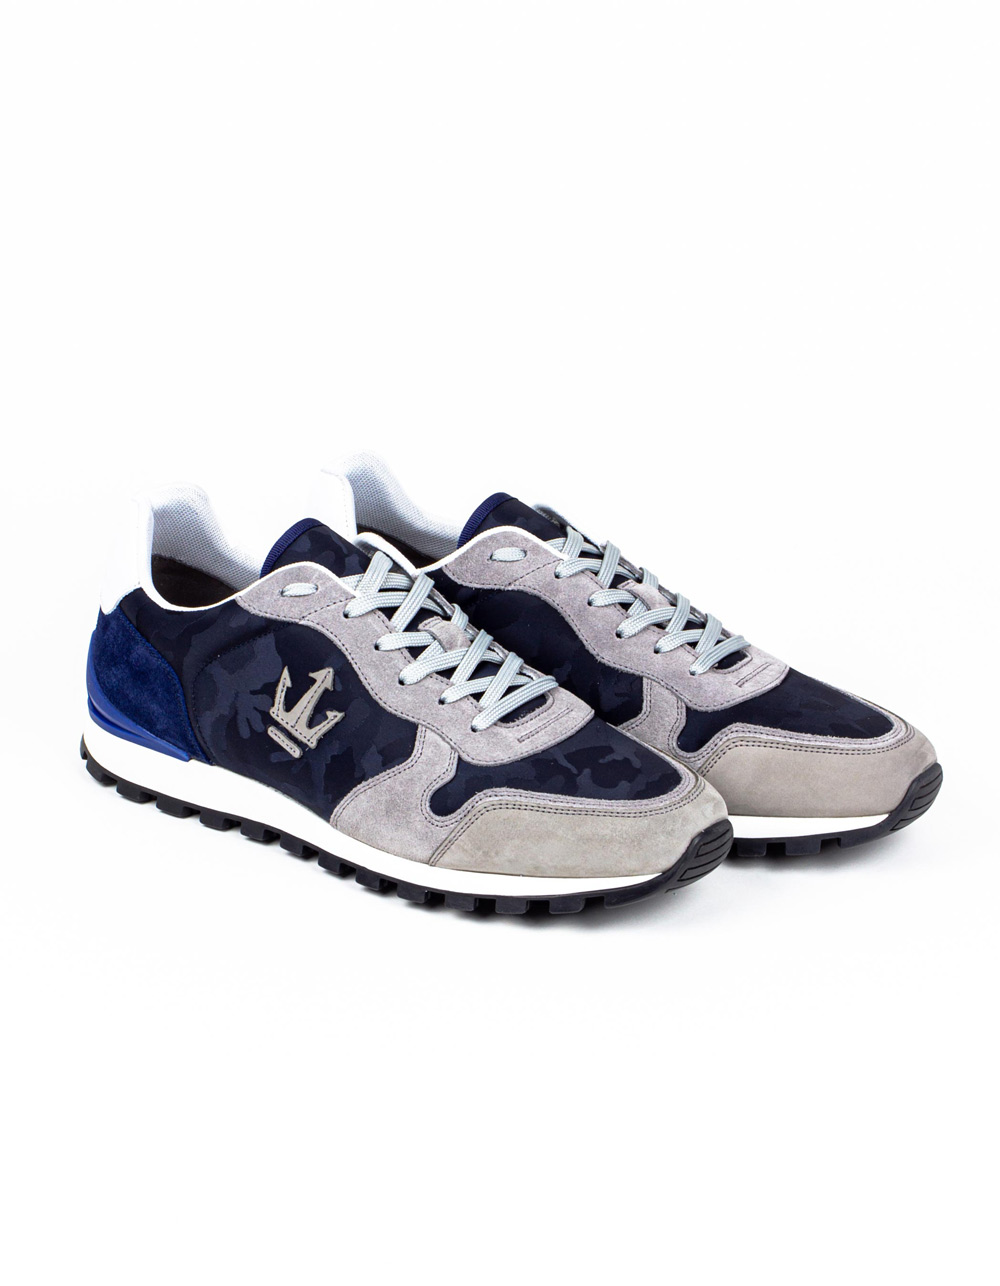 Camou navy sneakers